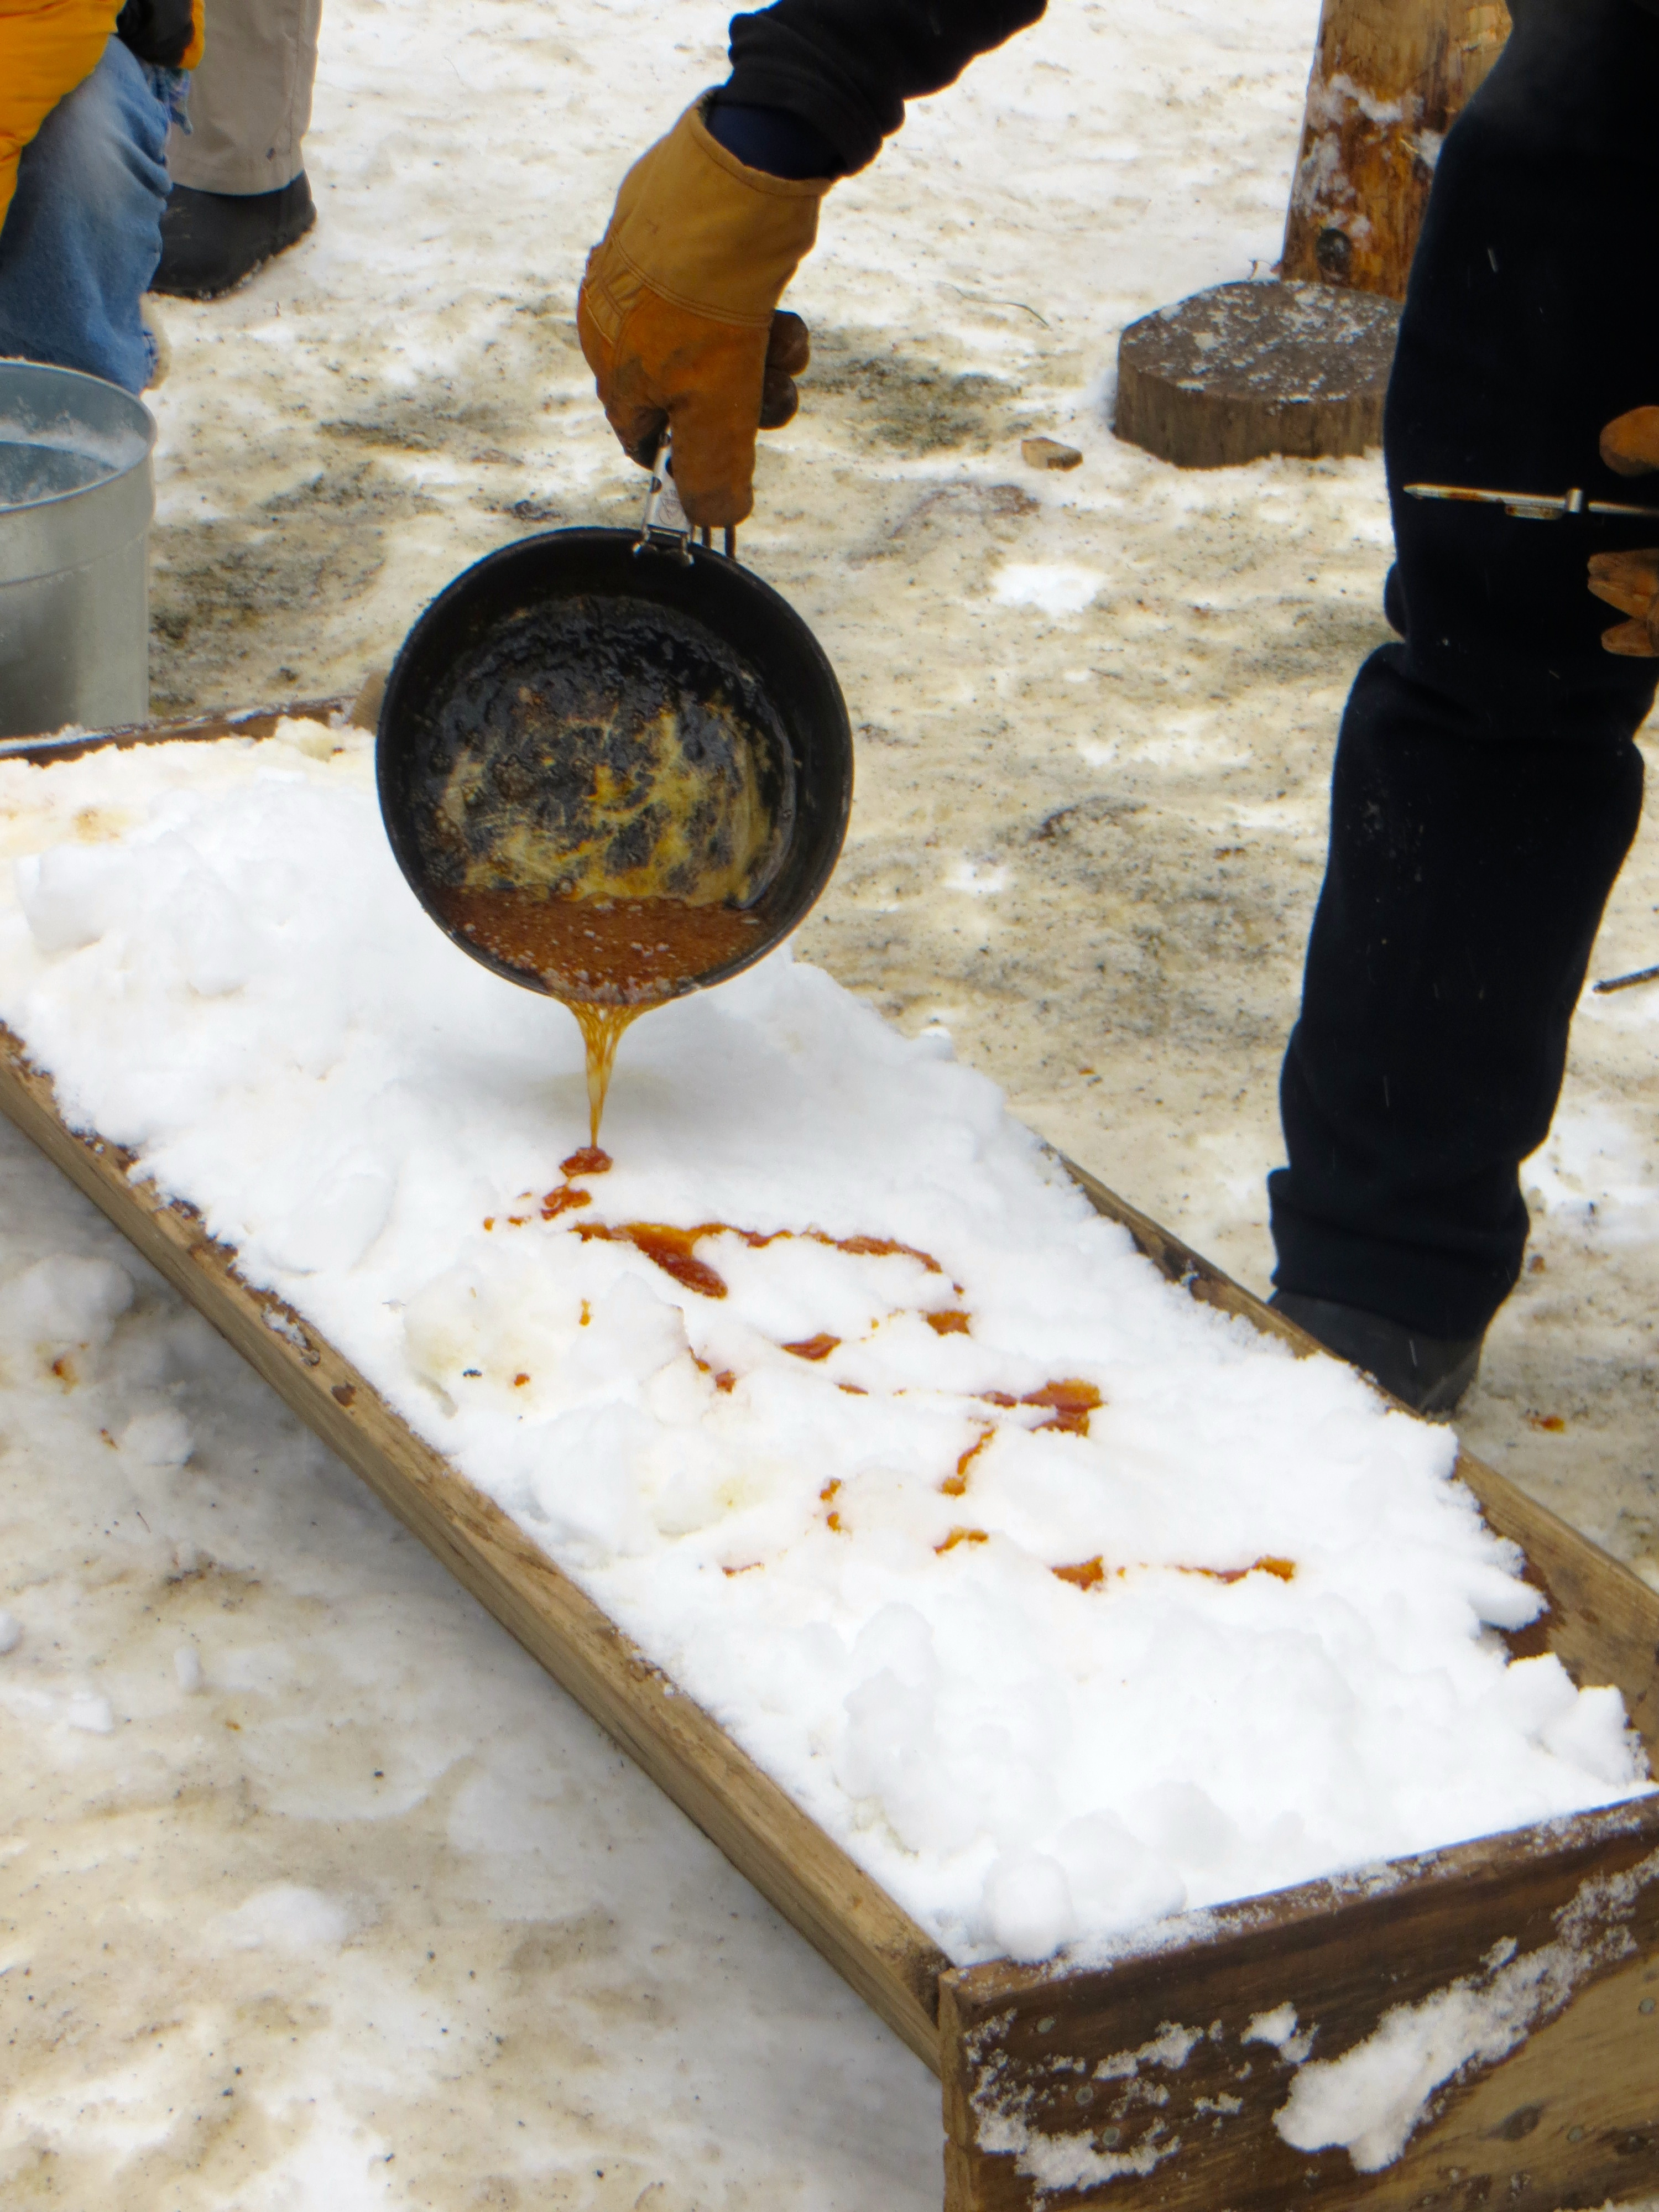 Pouring the hot syrup onto fresh snow